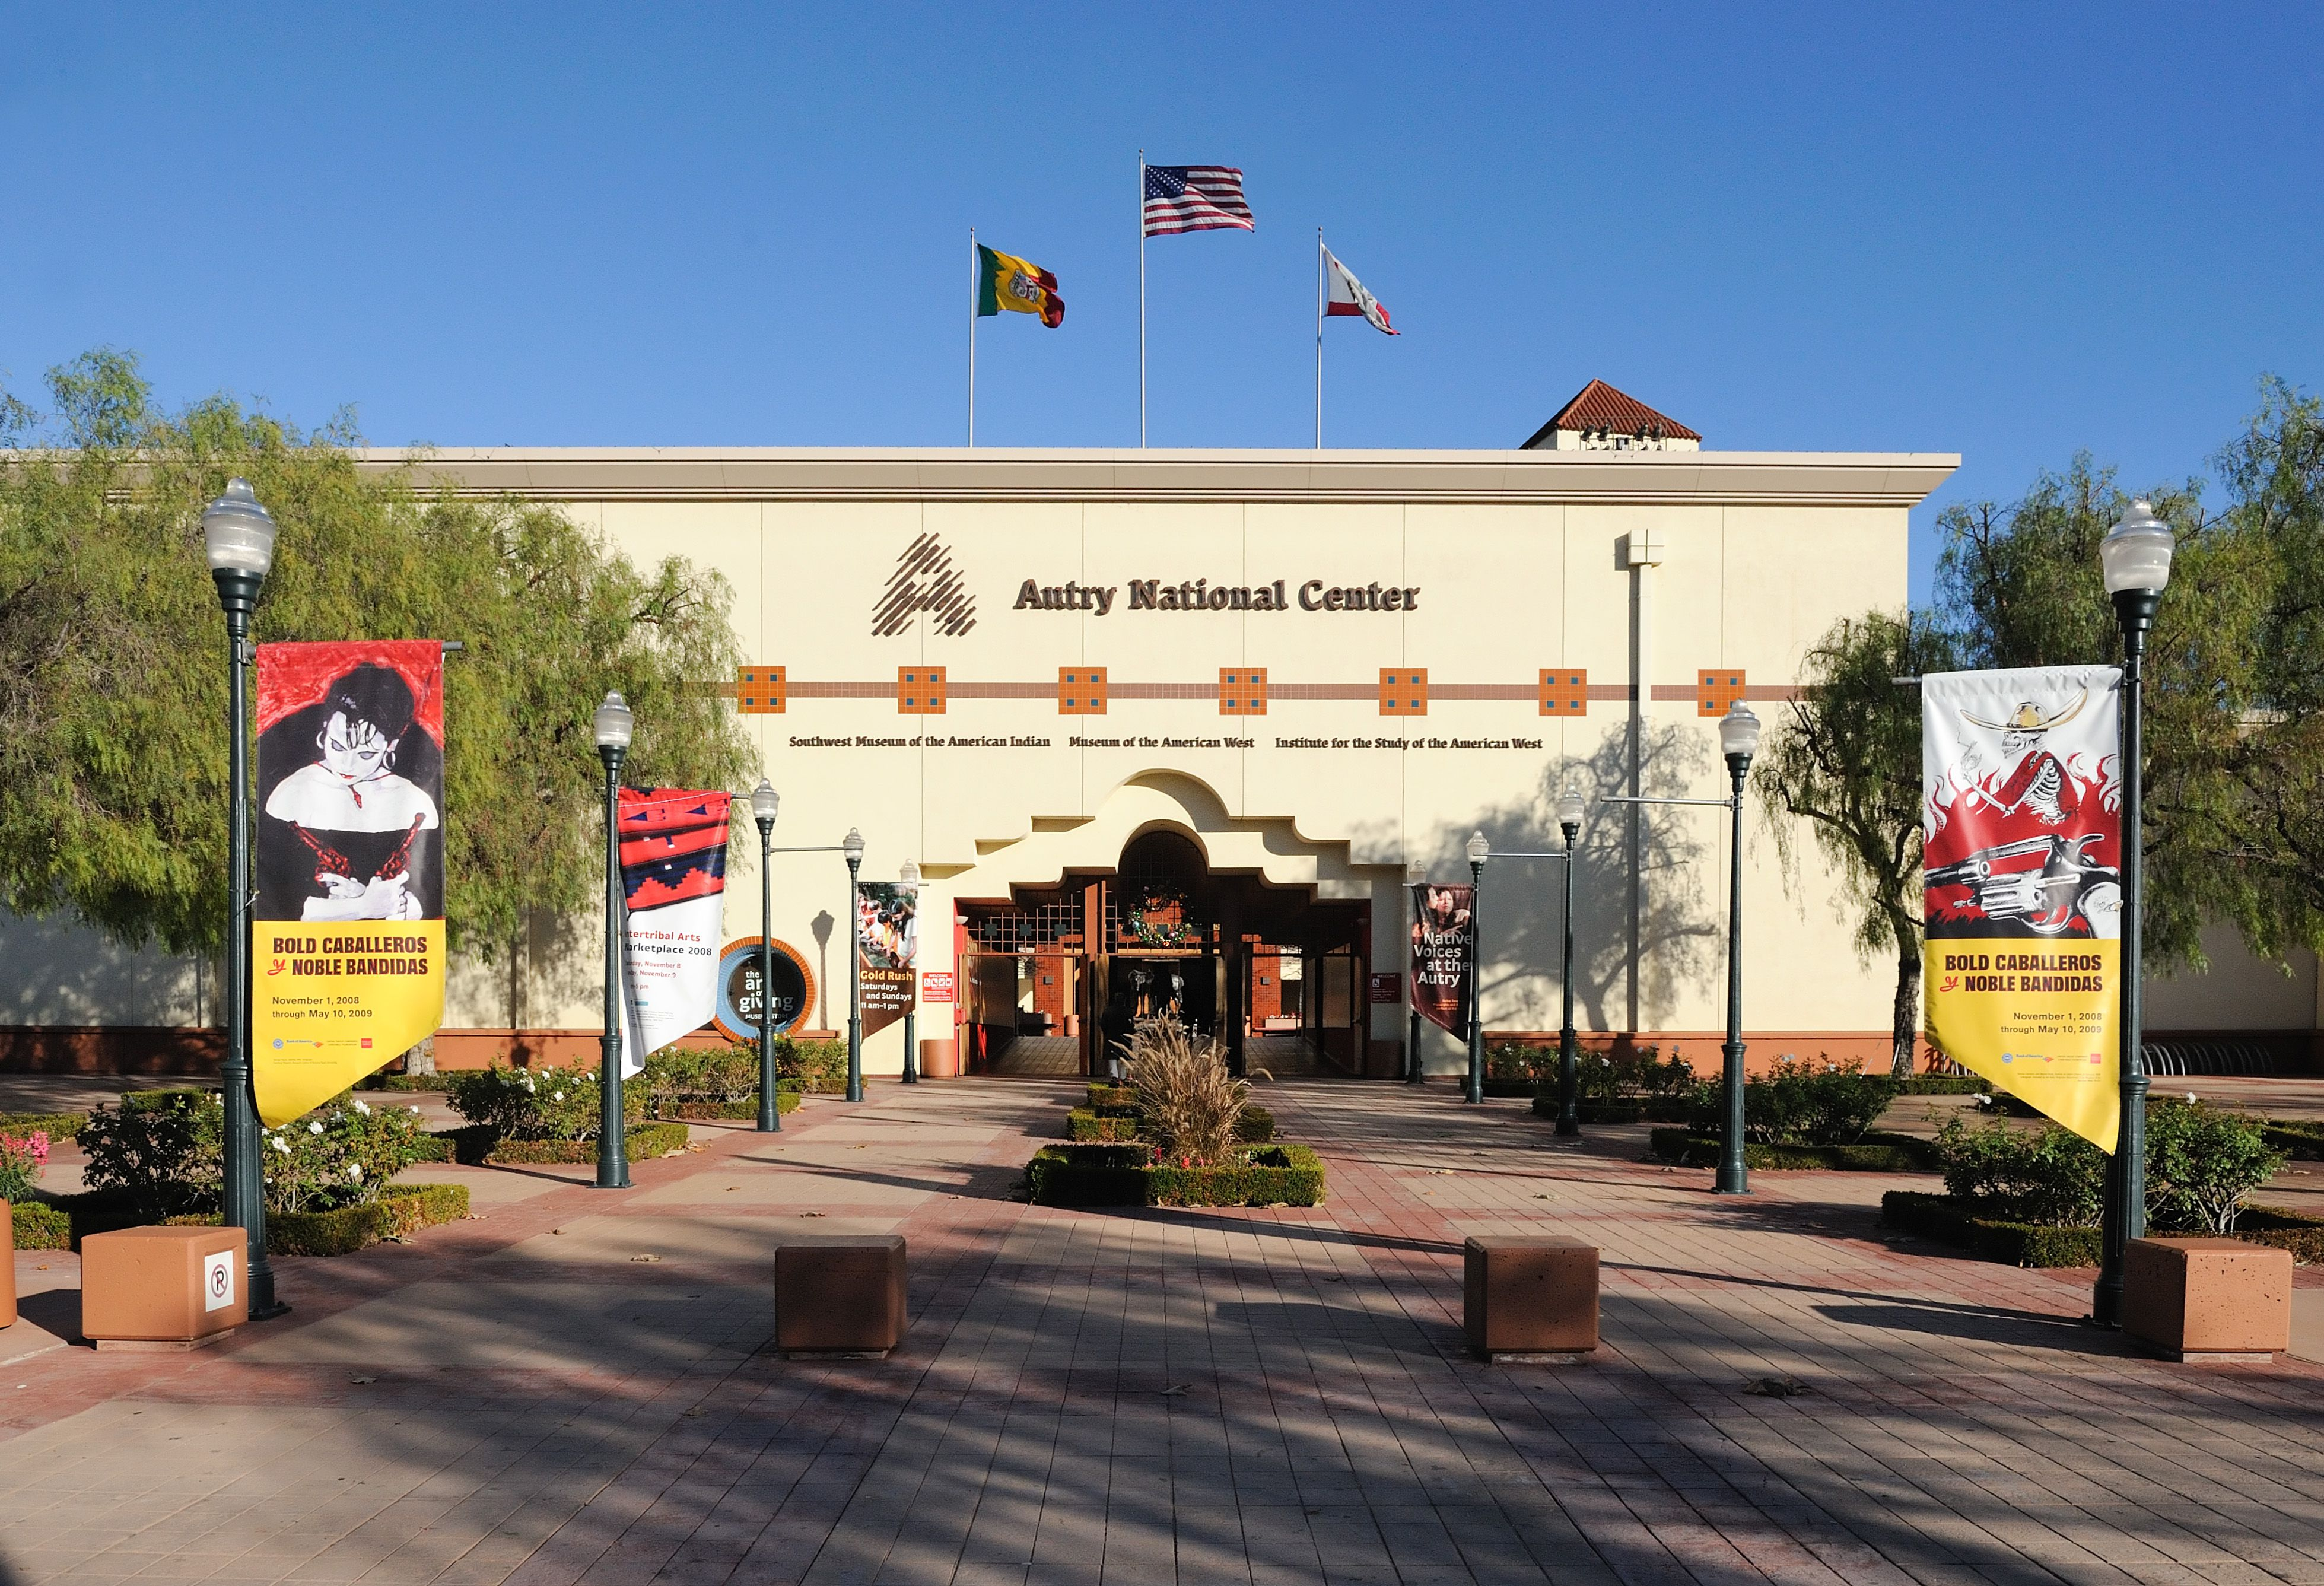 The Autry National Center, originally founded by Gene Autry, is now part of the Autry National Center, located in Griffith Park adjacent to the Los Angeles Zoo.